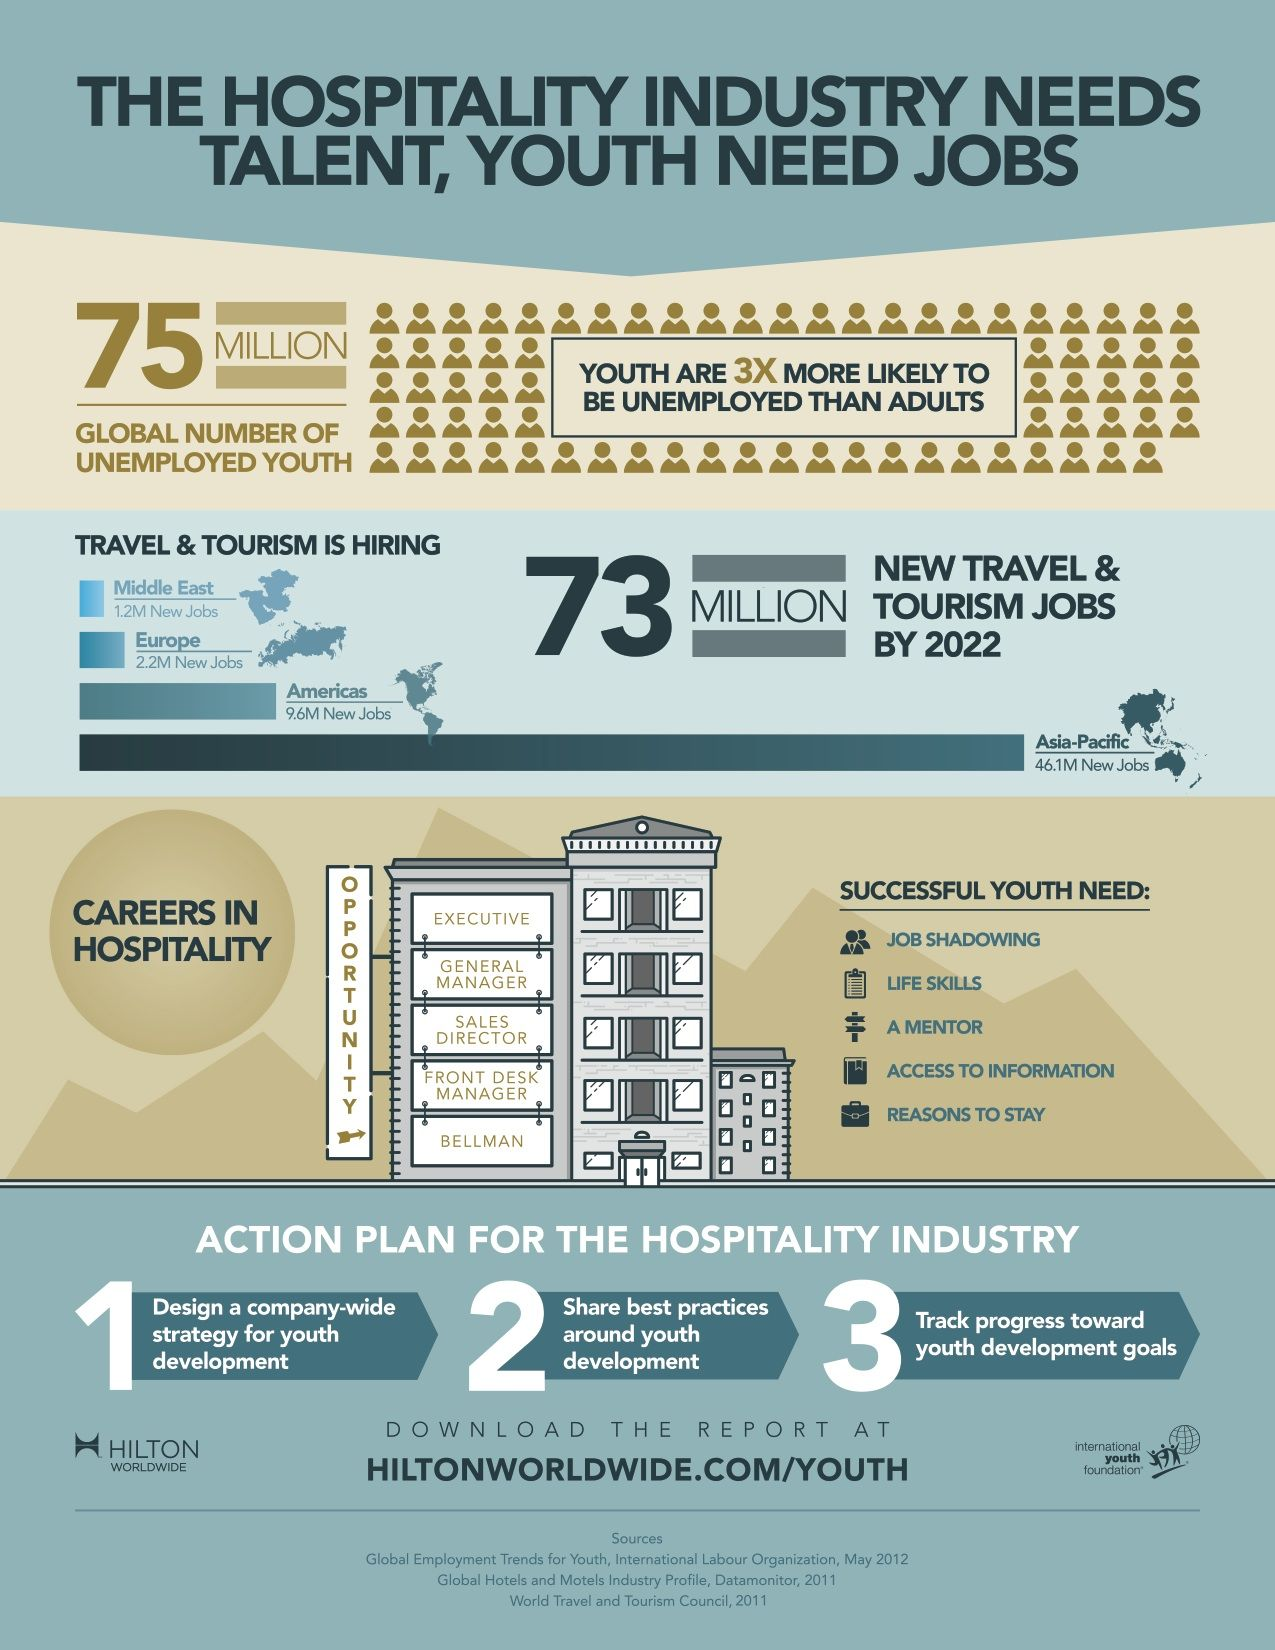 The Hospitality Industry Has Talent Youth Needs Jobs Infographic